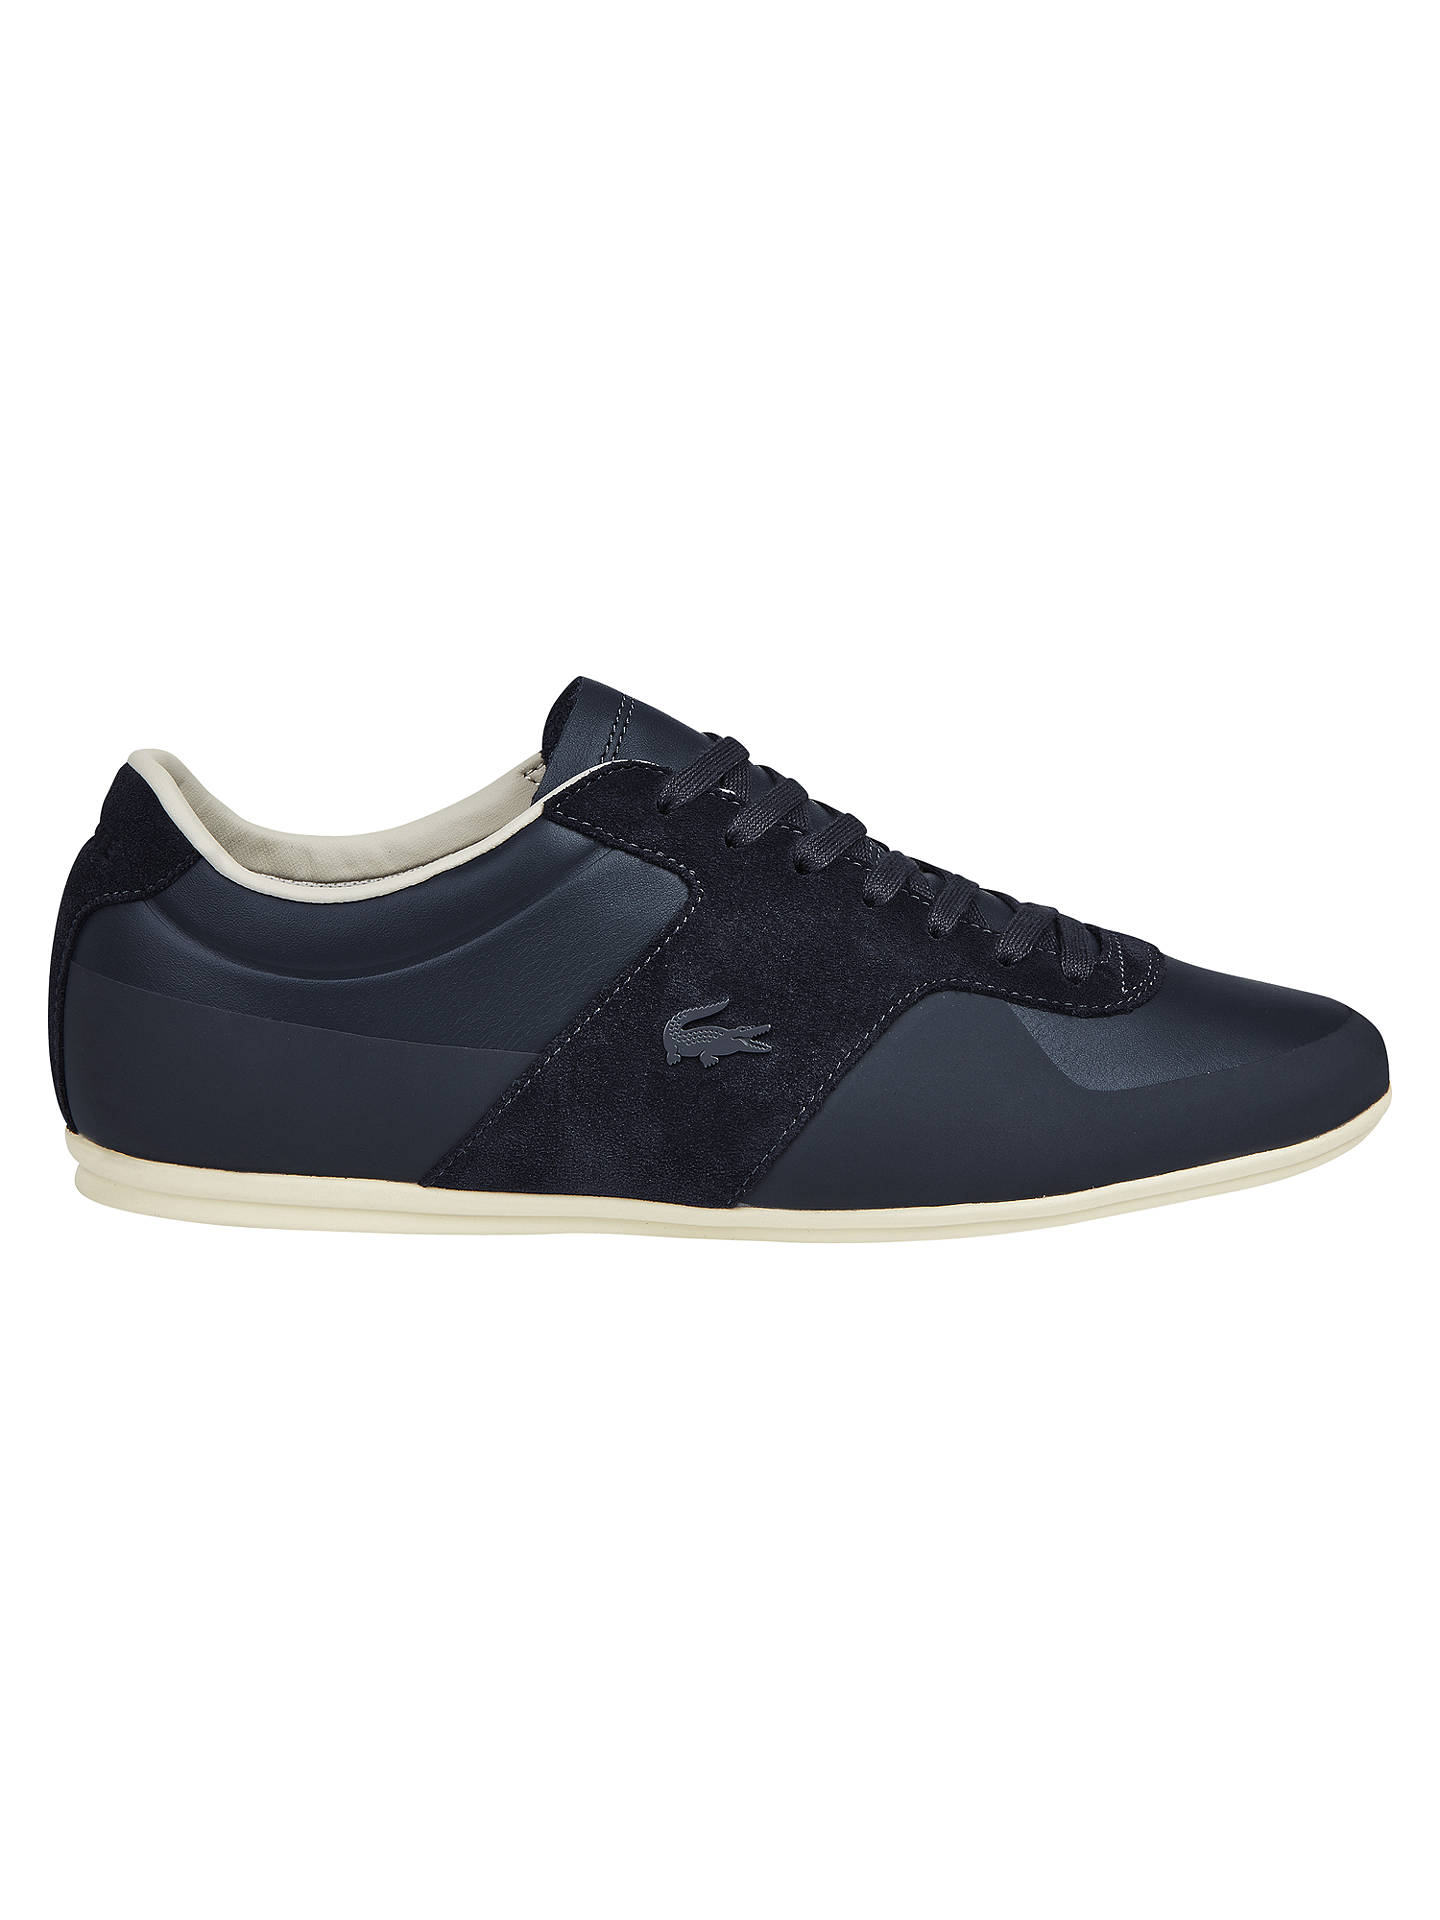 69bfcc48d96fd BuyLacoste Turnier Trainers